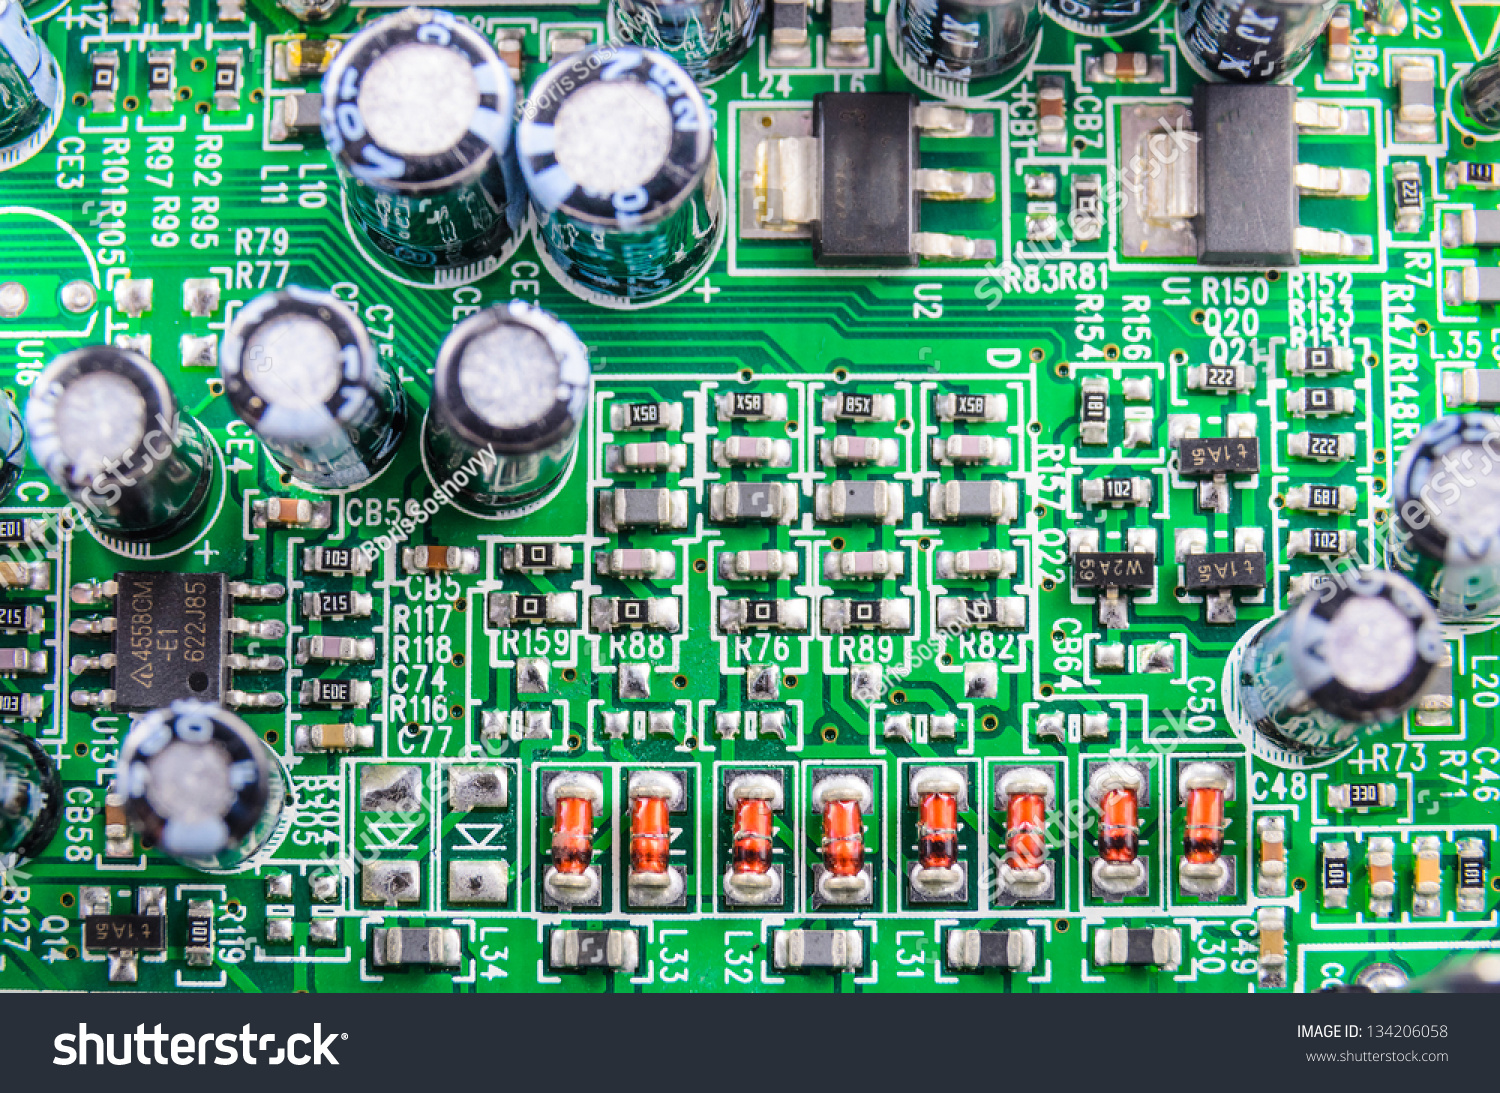 Radio Components On Printed Circuit Board Stock Photo Edit Now Picture Of A Close Up